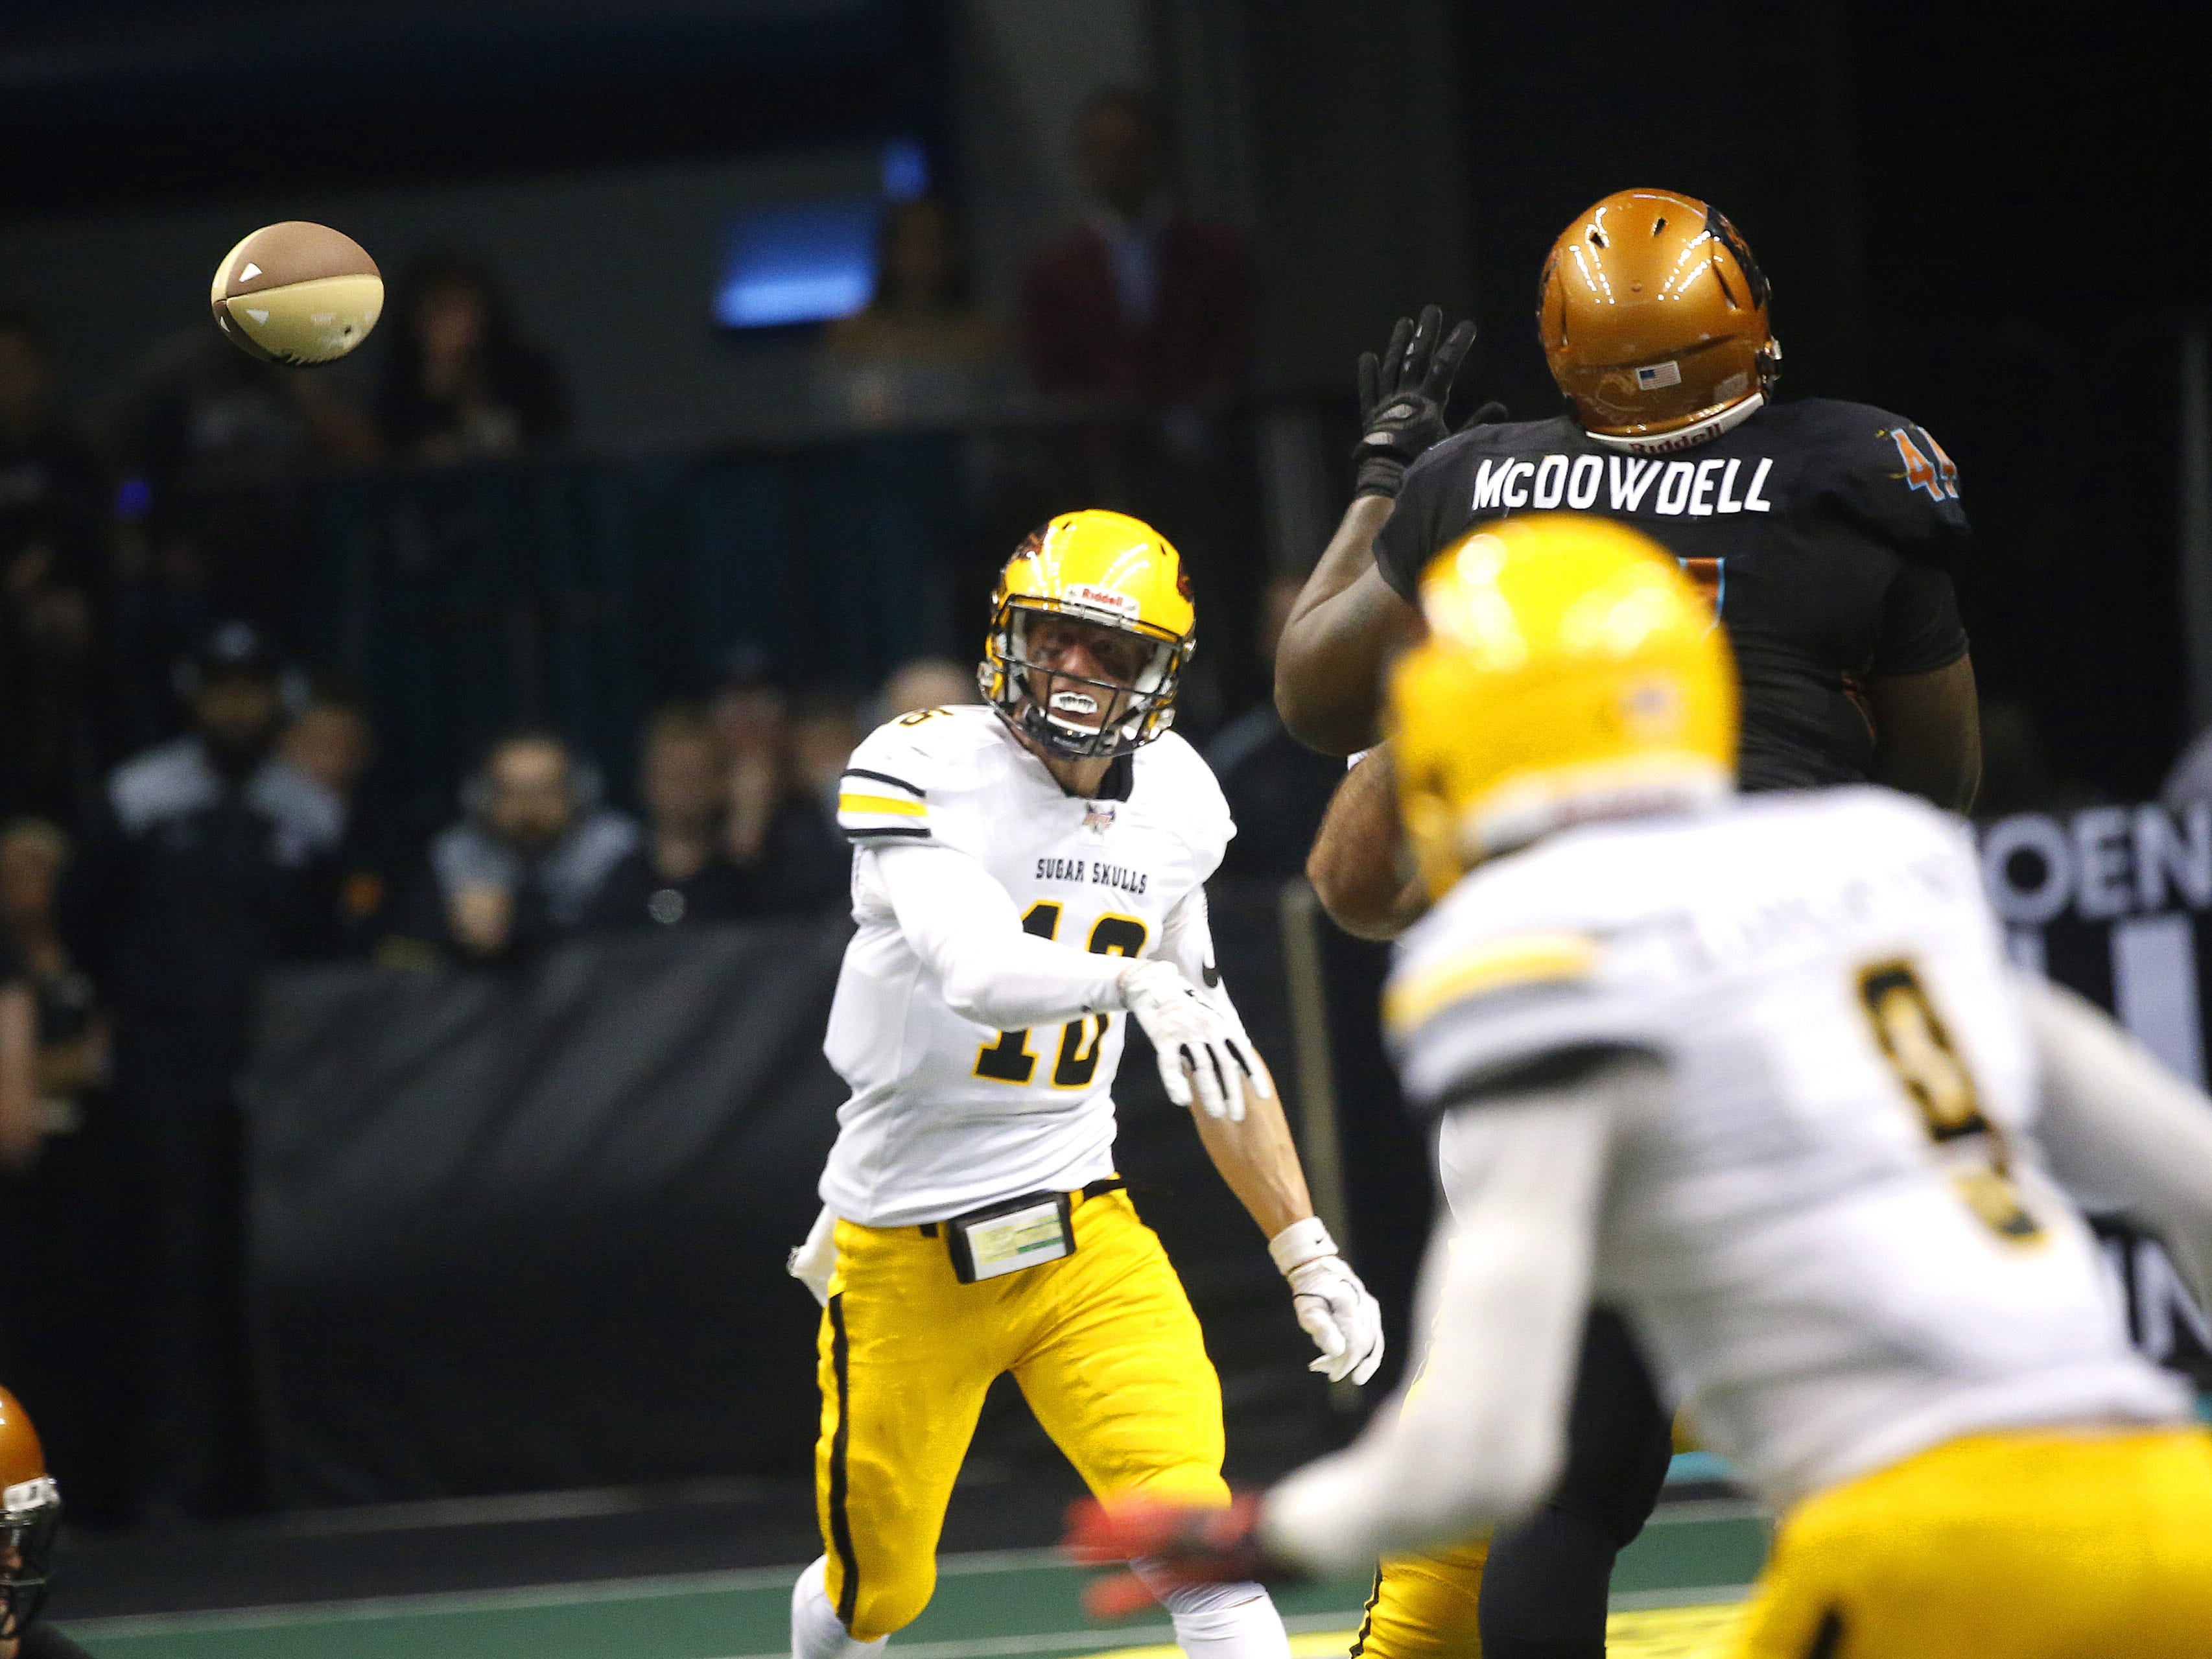 Sugar Skulls' Matt Behrendt (16) throws a pass against the rush of Rattlers' Lance McDowdell (44) during the first half at Talking Stick Resort Arena in Phoenix, Ariz. on March 16, 2019.